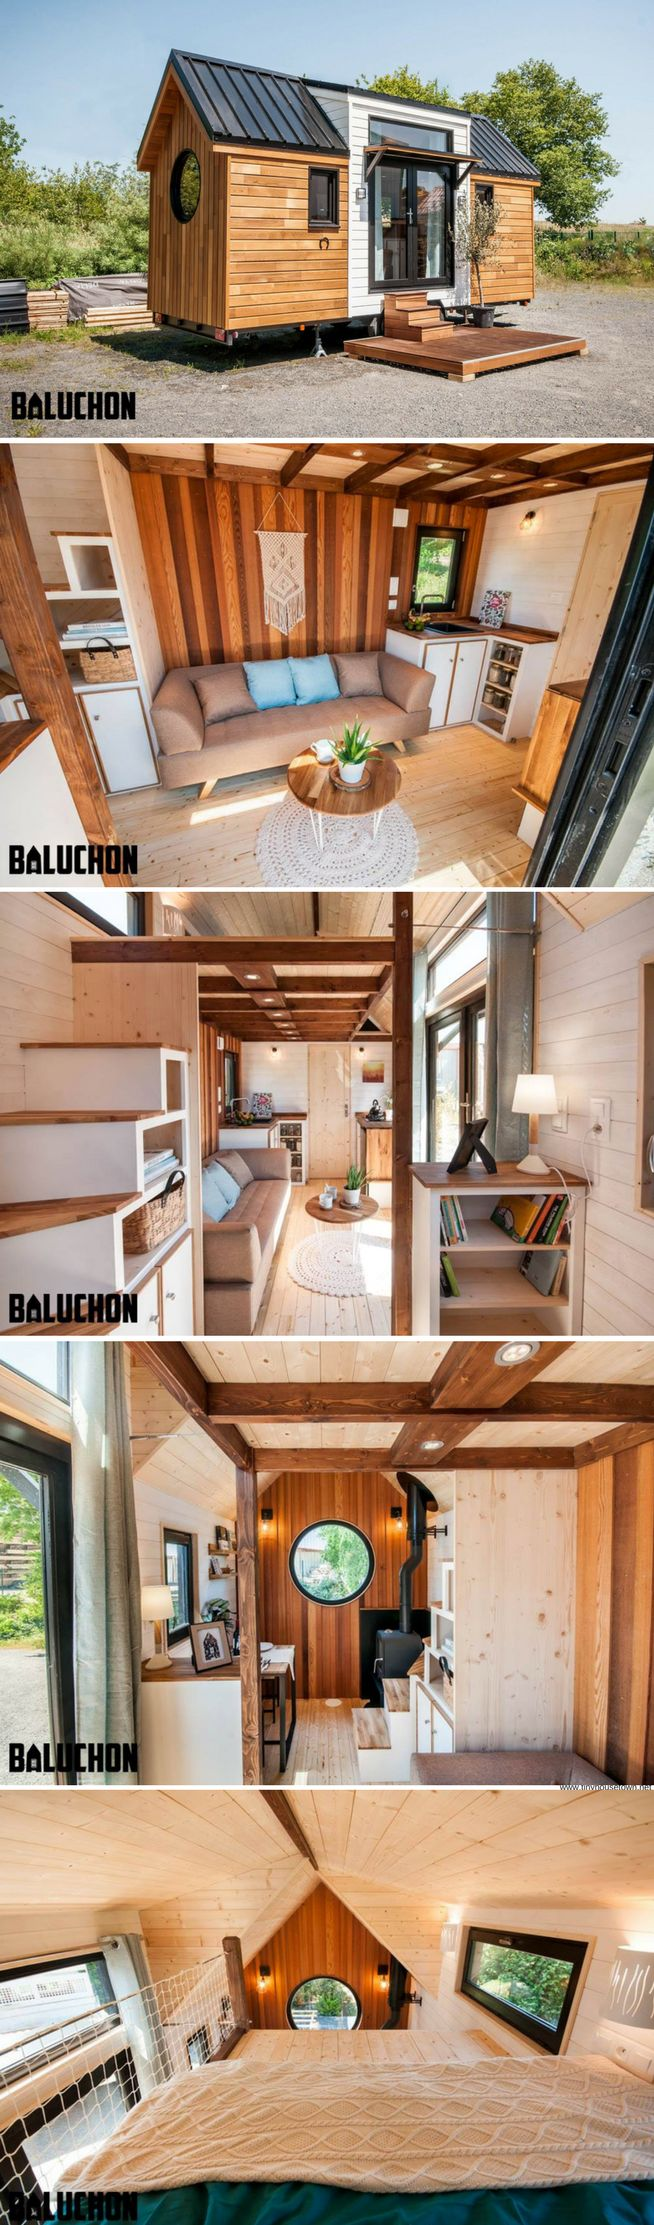 The Ostara Tiny House from Baluchon